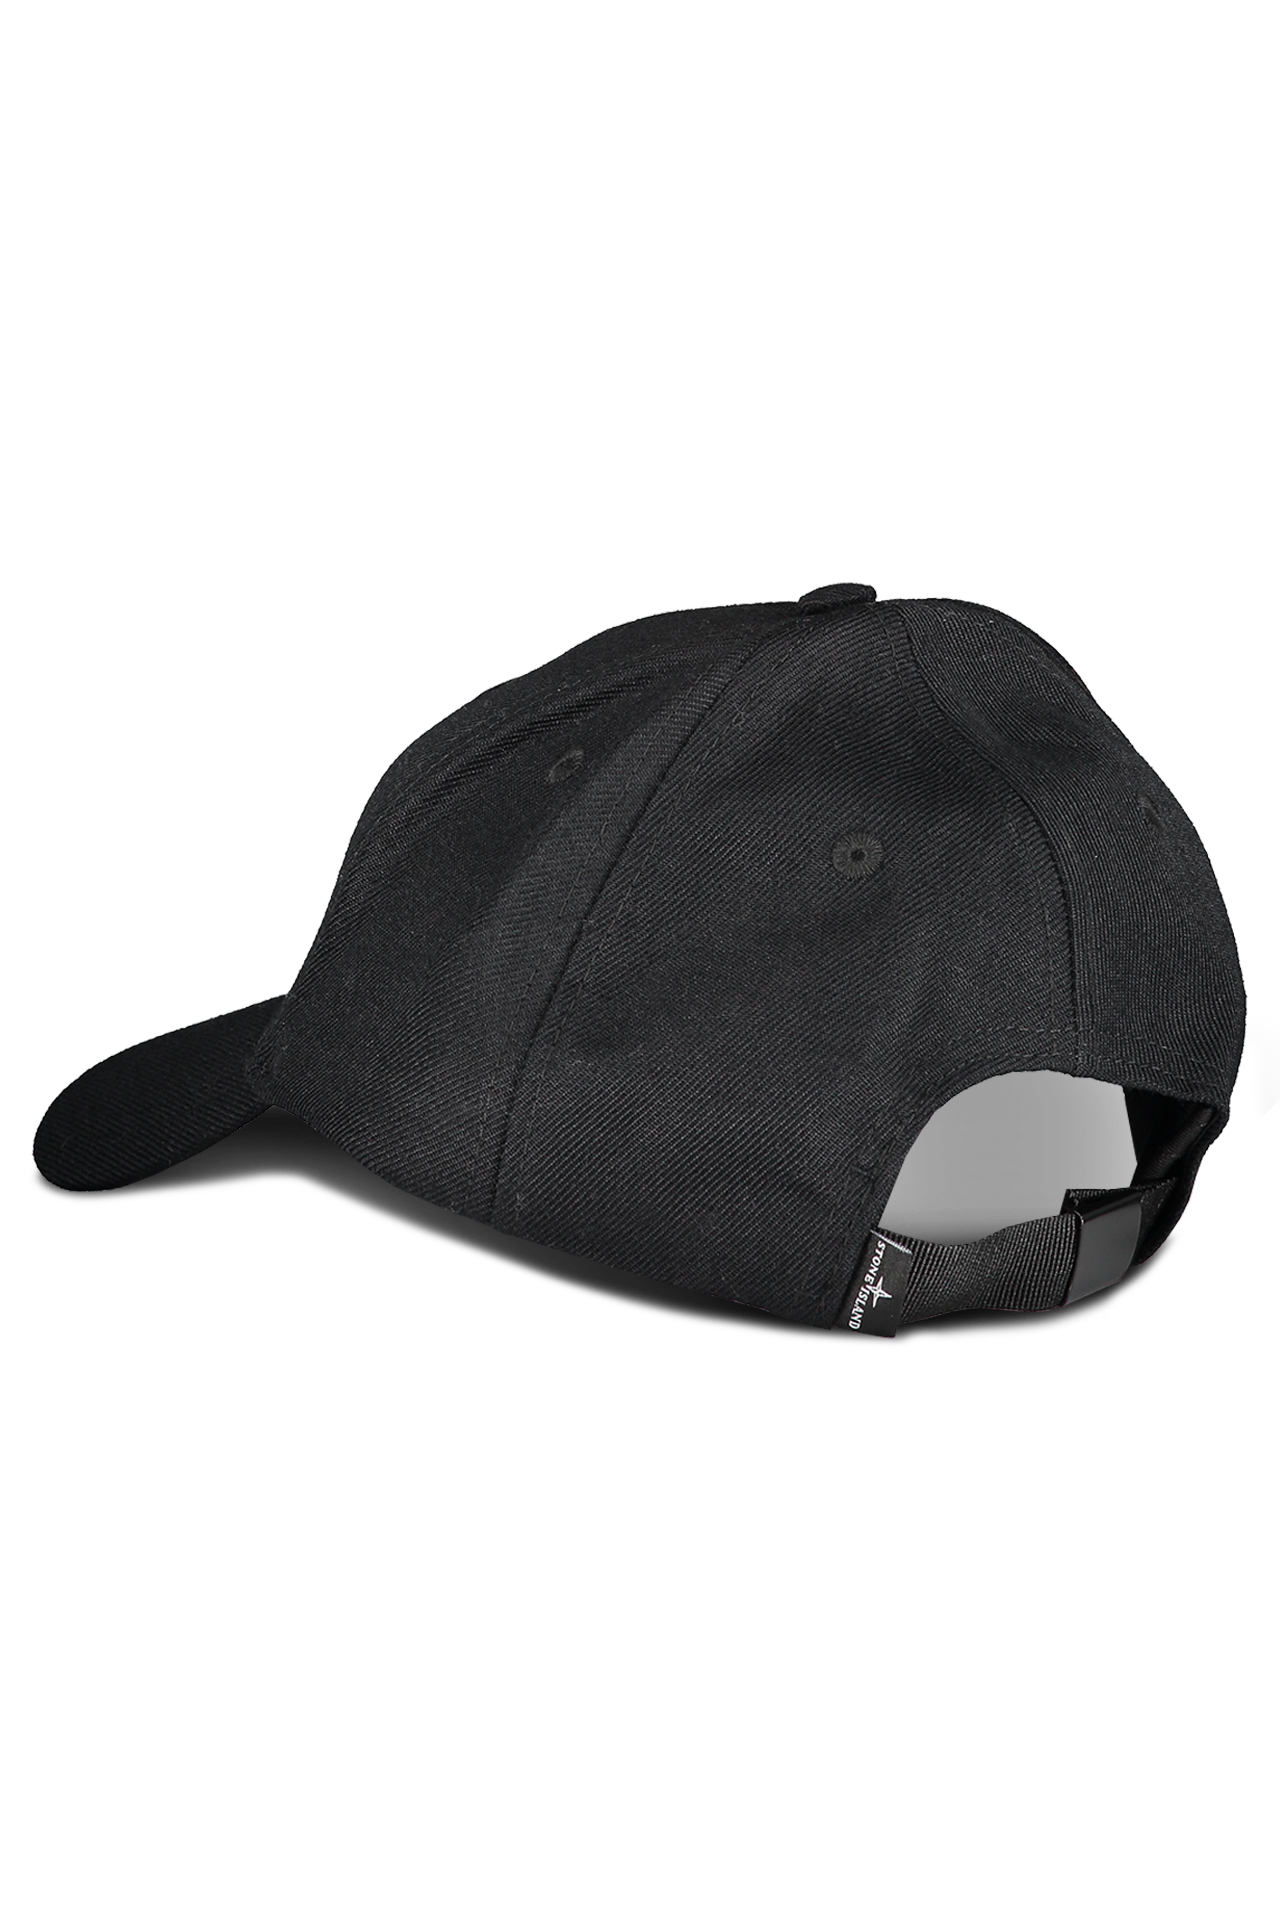 Back View of Stone Island Black Hat